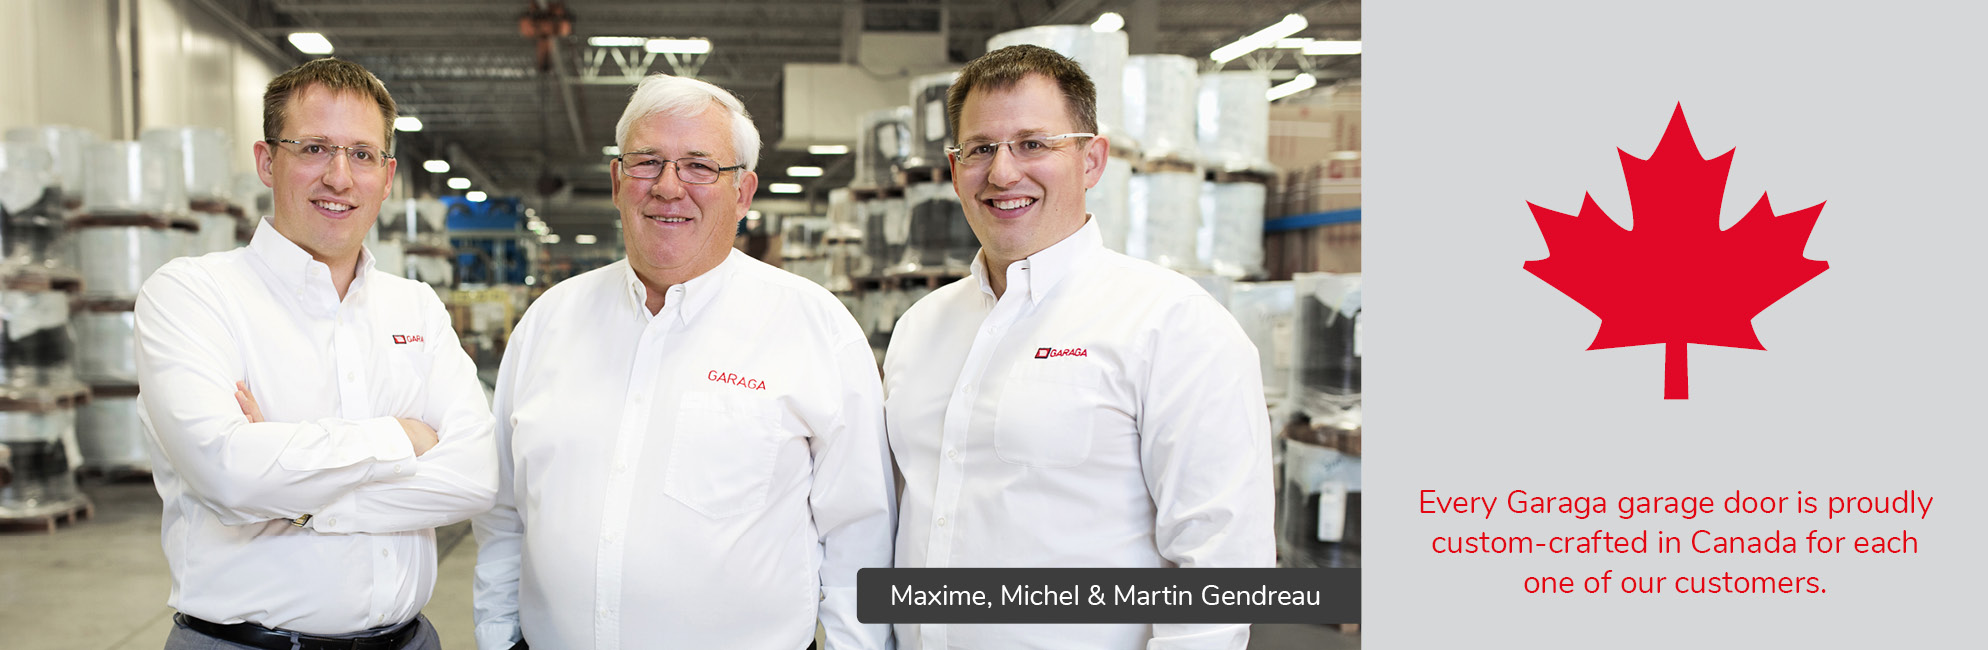 Maxime, Michel and Martin Gendreau